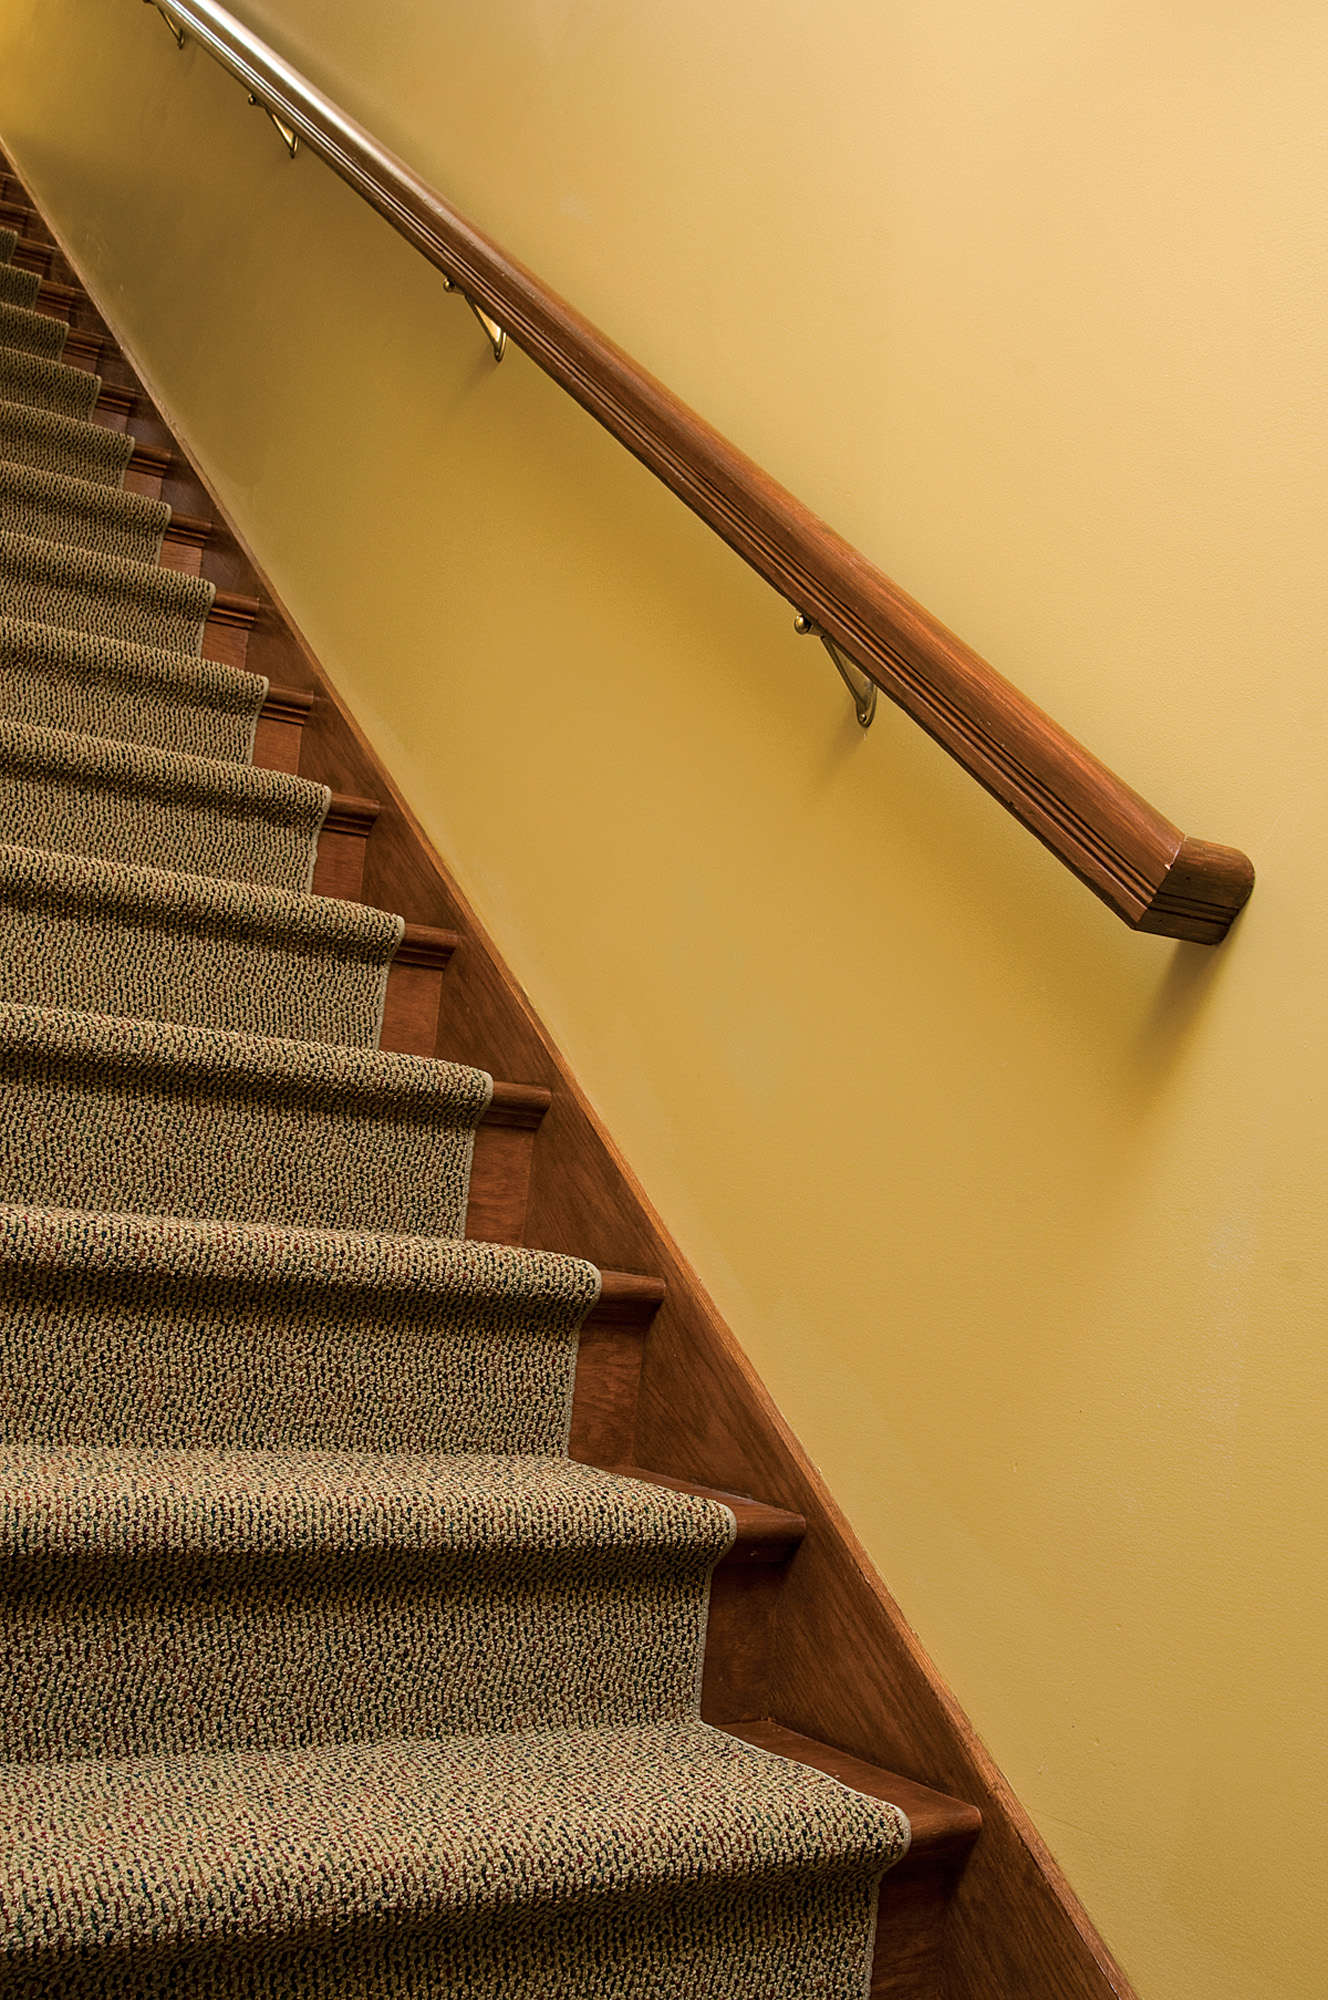 How To Hang a Stair Rail - Restoration & Design for the ...